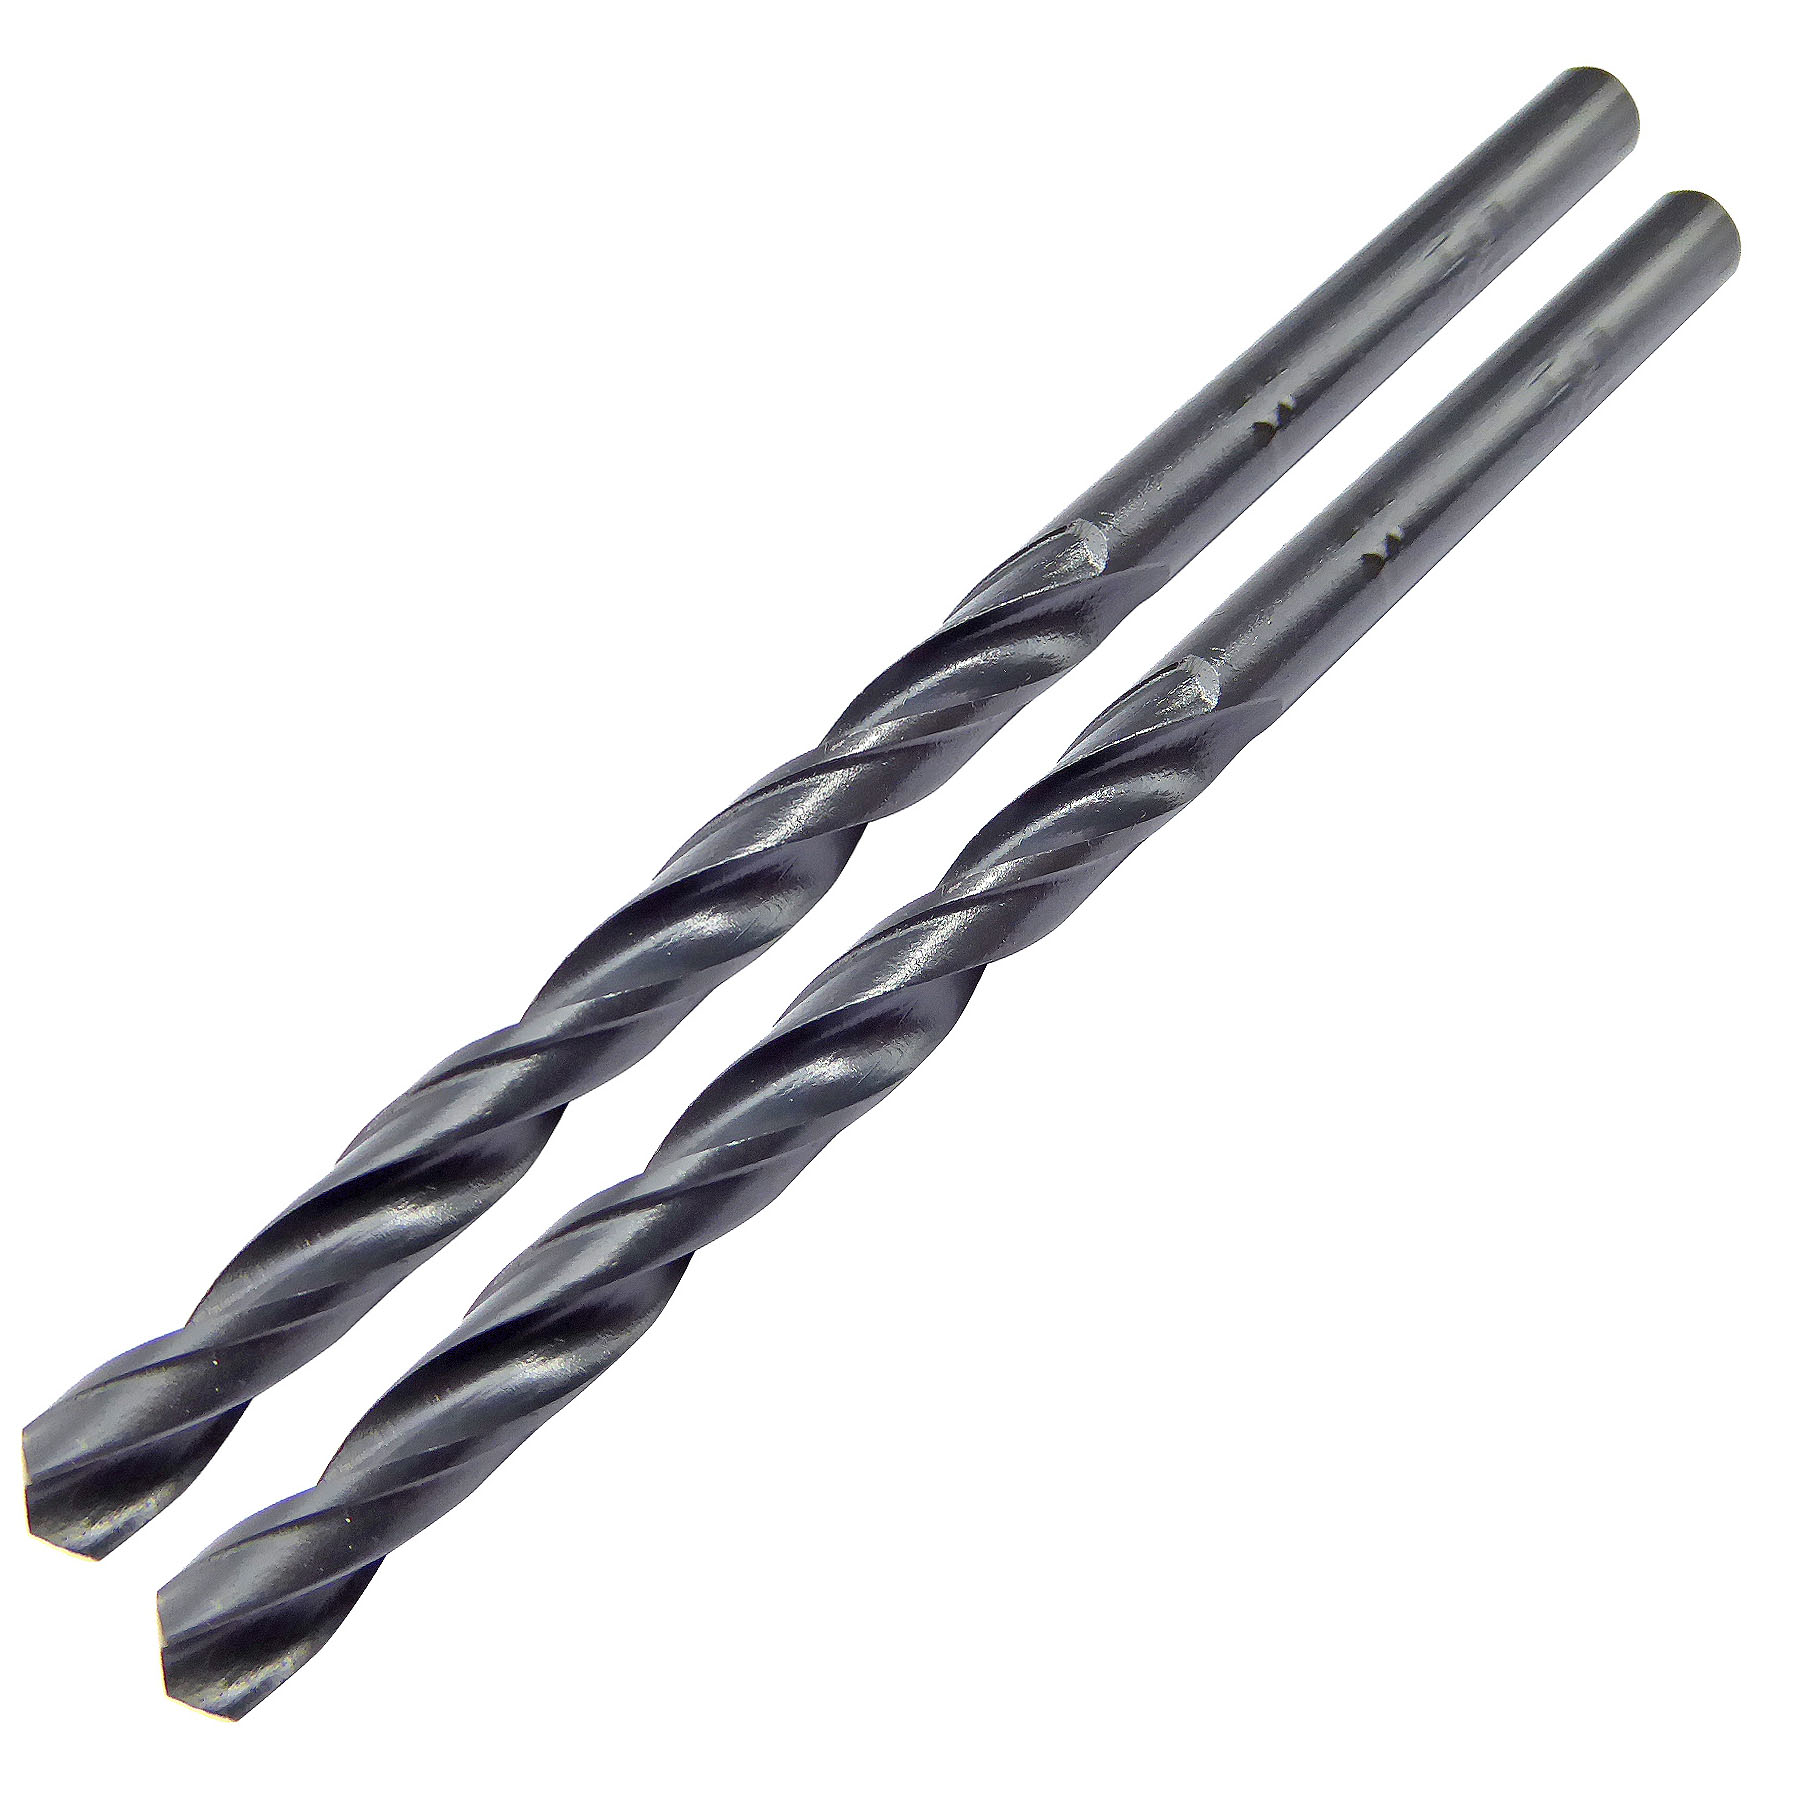 5.5mm x 93mm HSS Roll Forged Jobber Drill Pack of 2